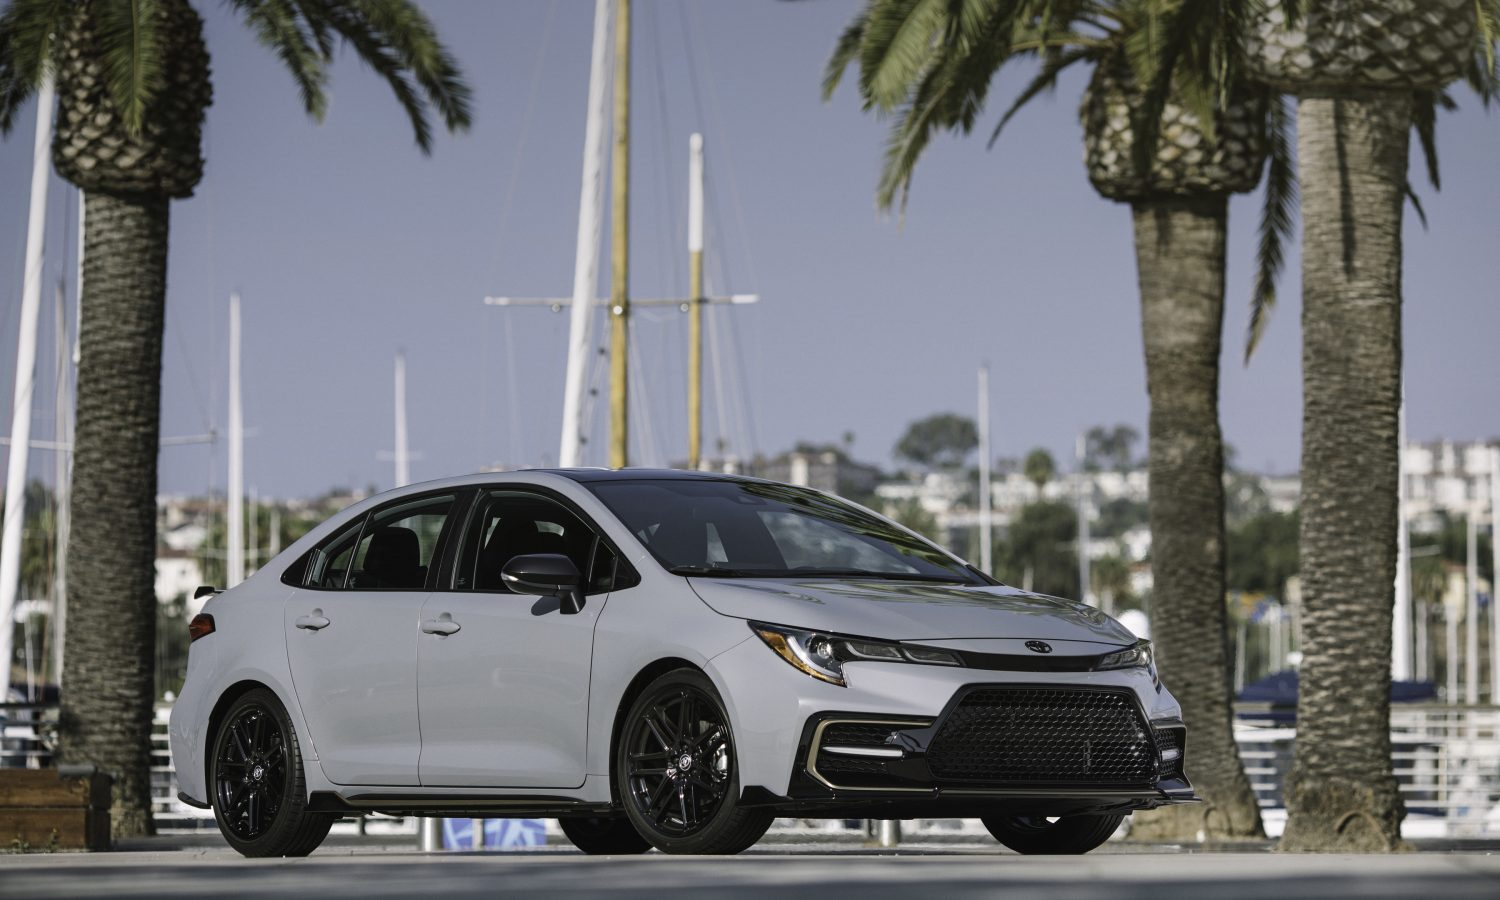 2021 Toyota Corolla Apex Edition Aims for the Curves in Bold Style